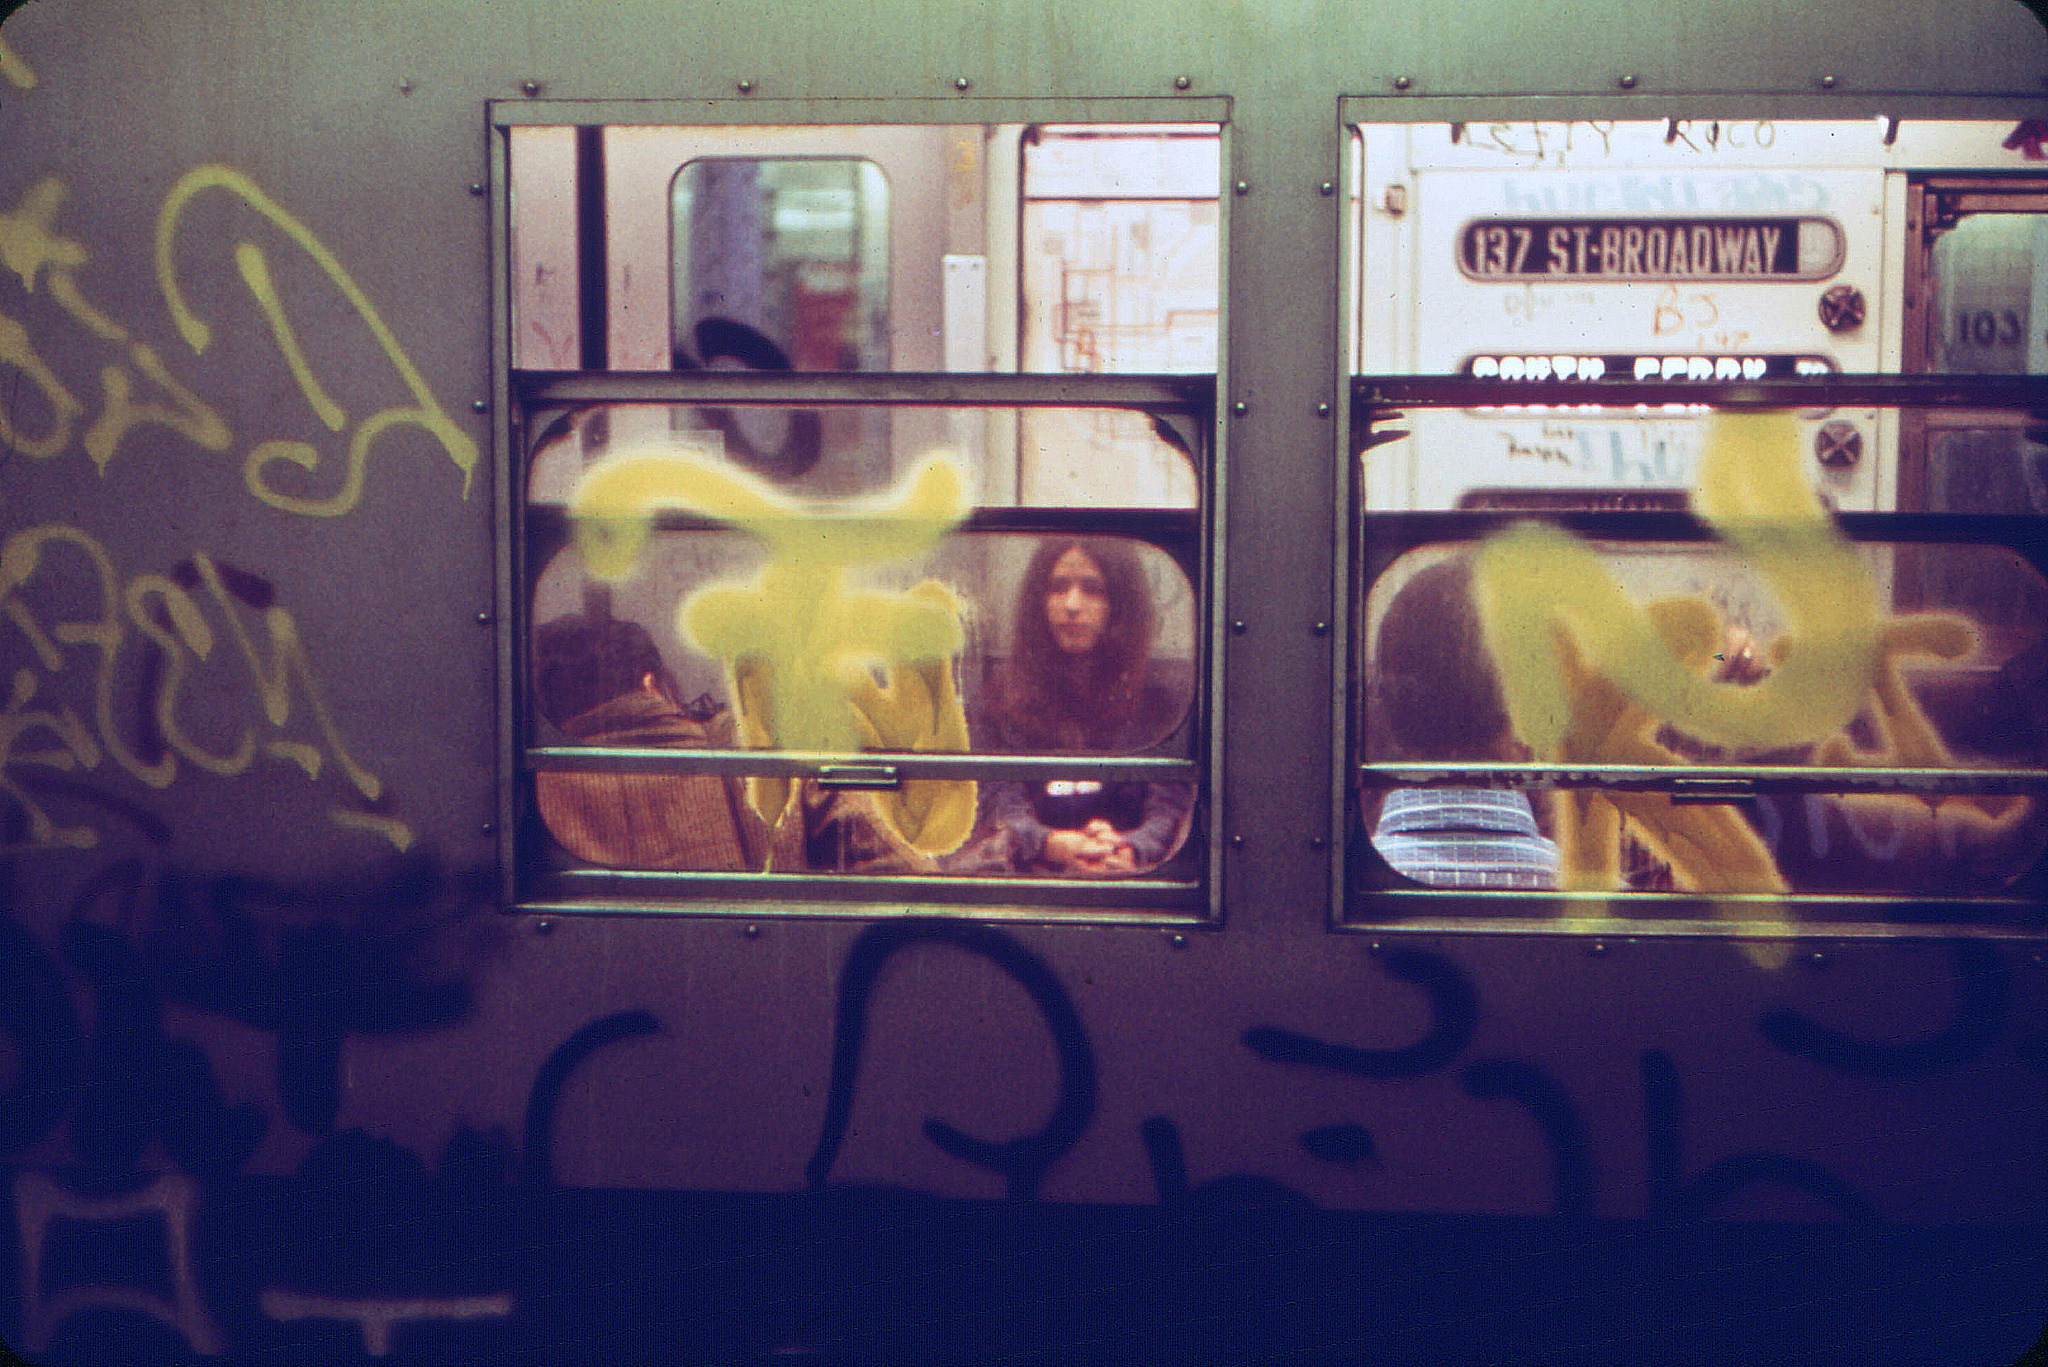 Subway Train, New York. April 1976